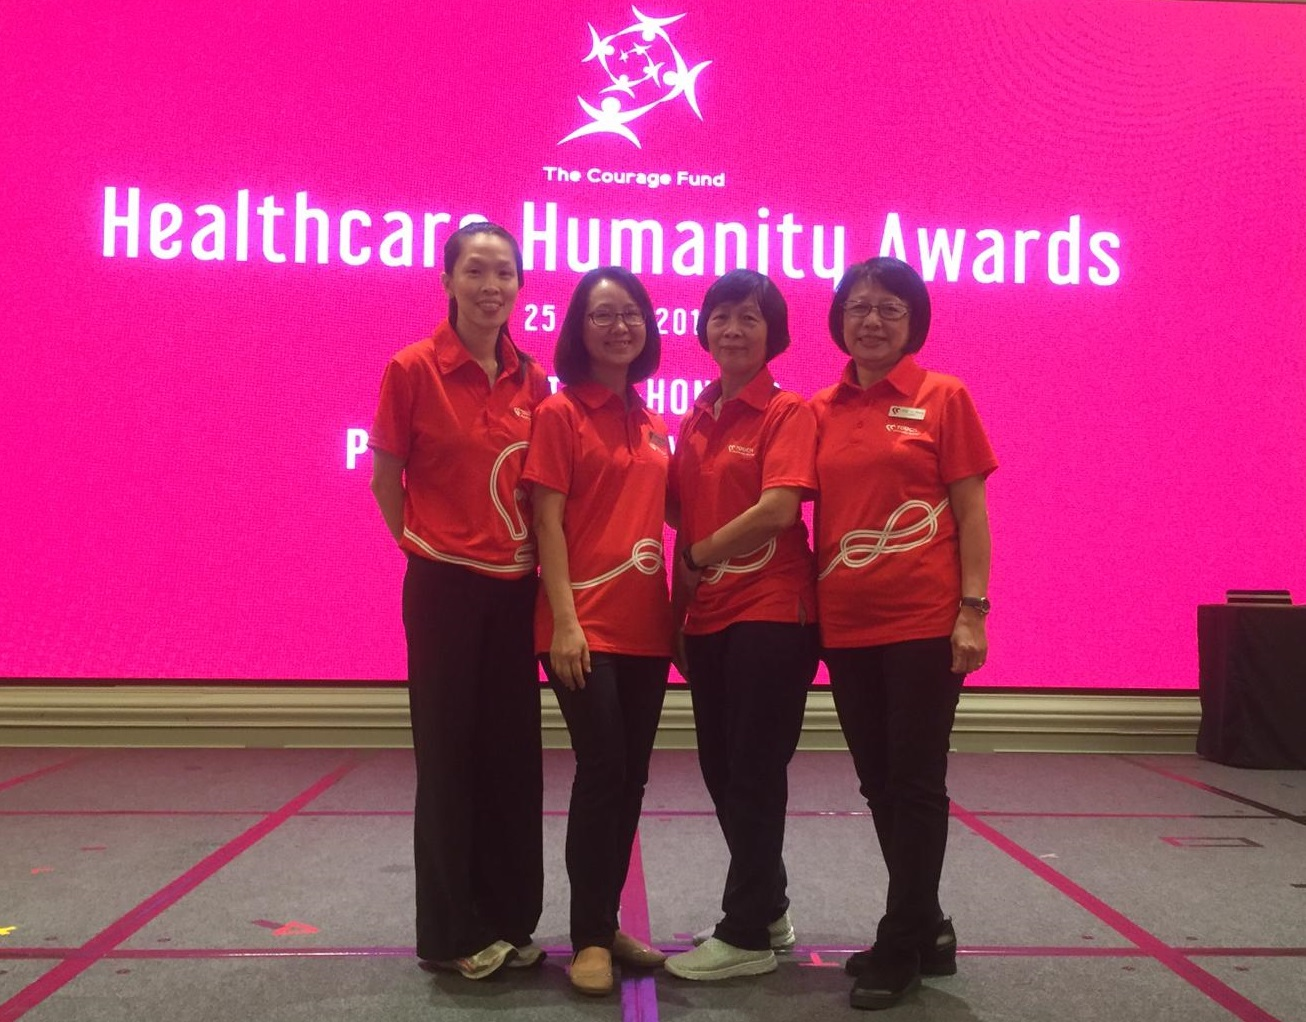 Healthcare Humanity Awards